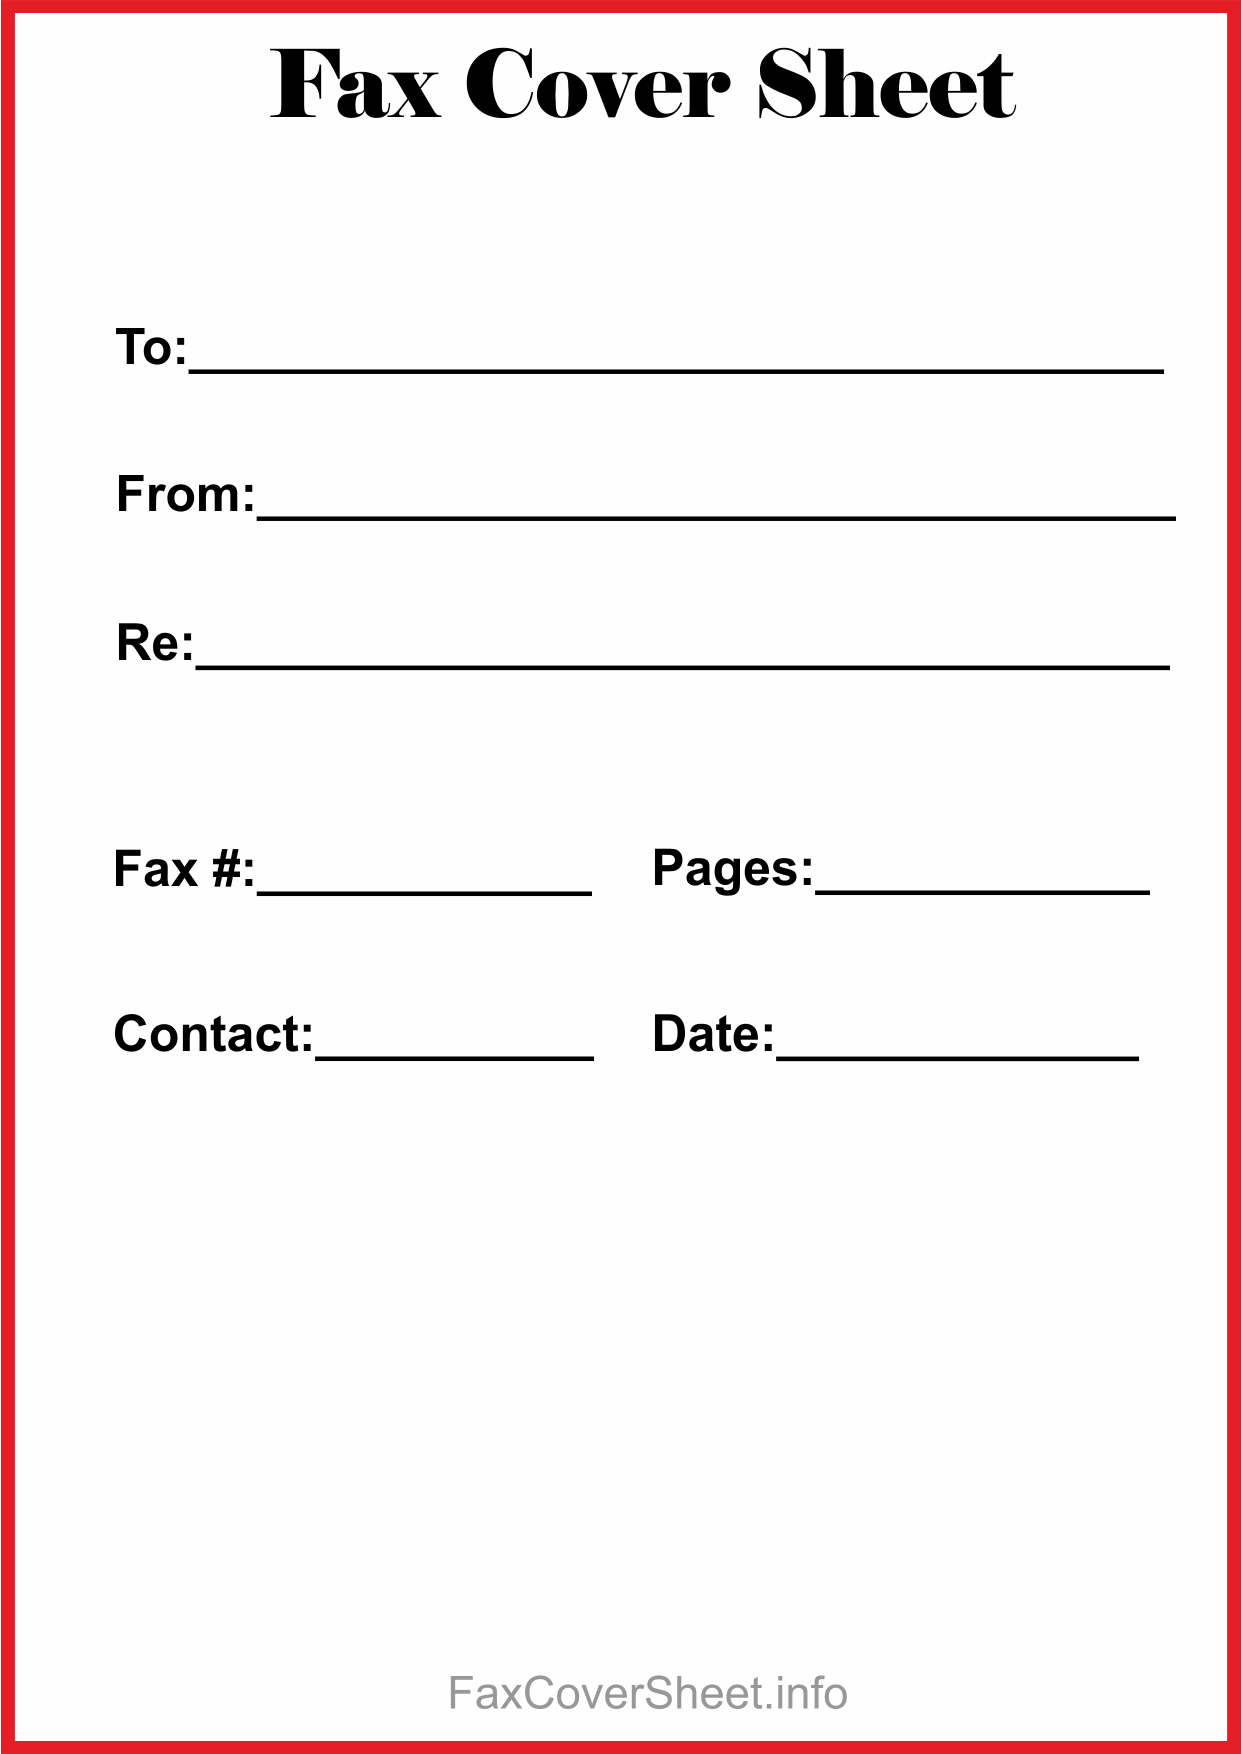 graphic regarding Printable Cover Sheet called No cost Printable Fax Include Sheet PDF Down load ($367